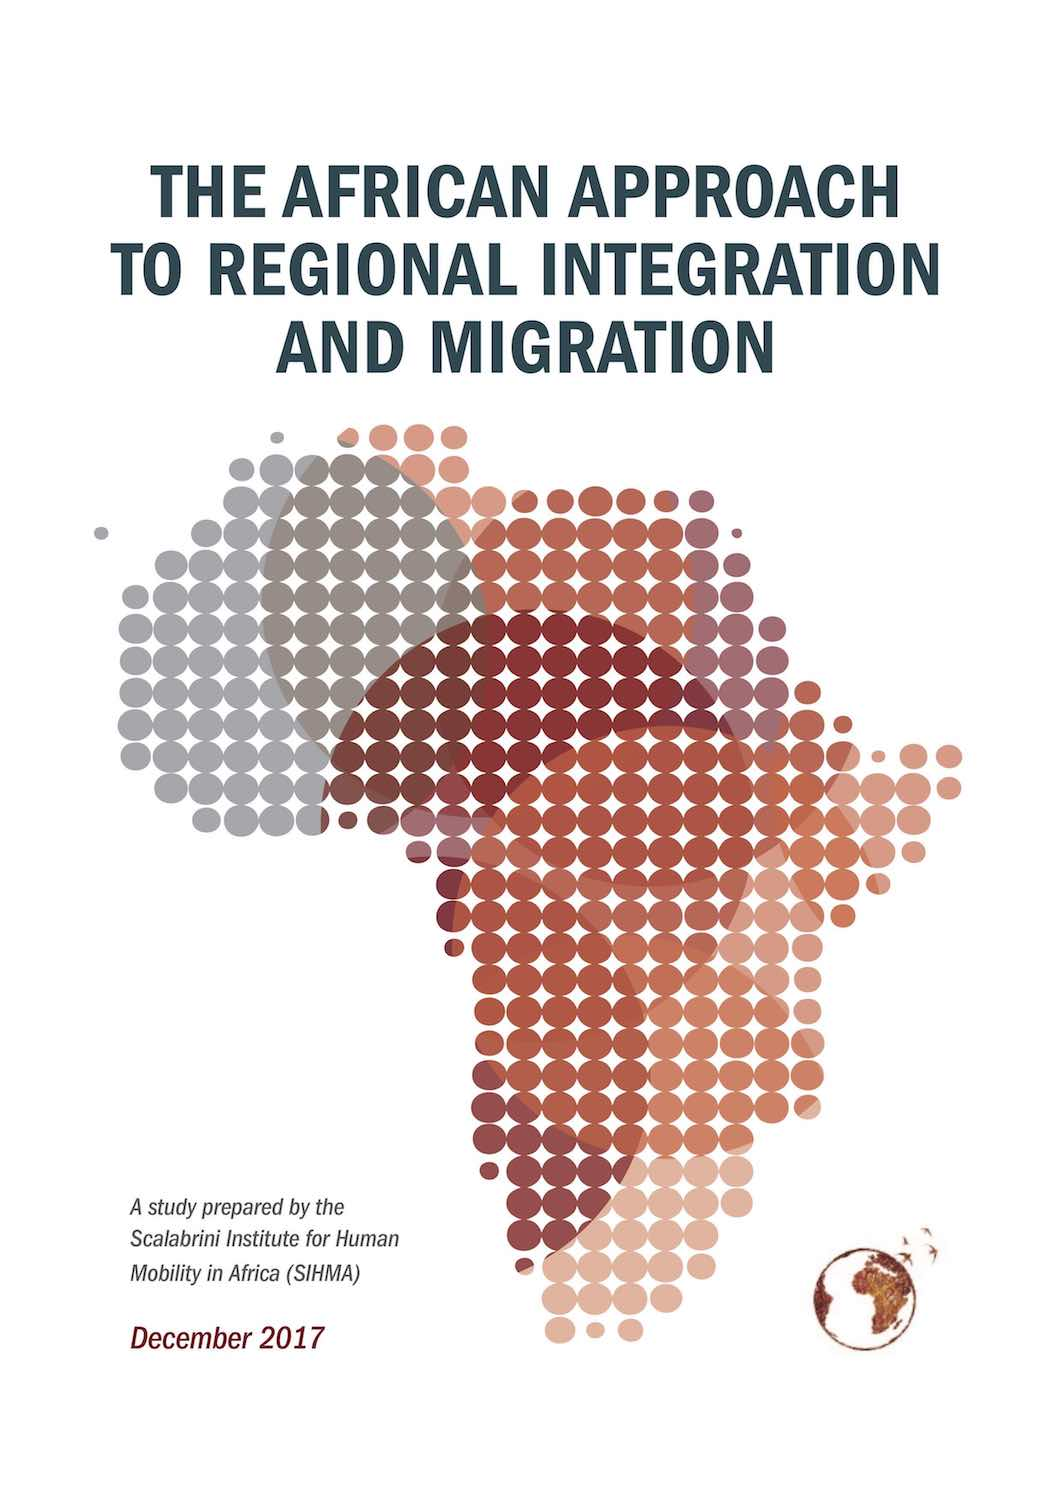 SIHMA Report: The African Approach to Regional Integration and Migration